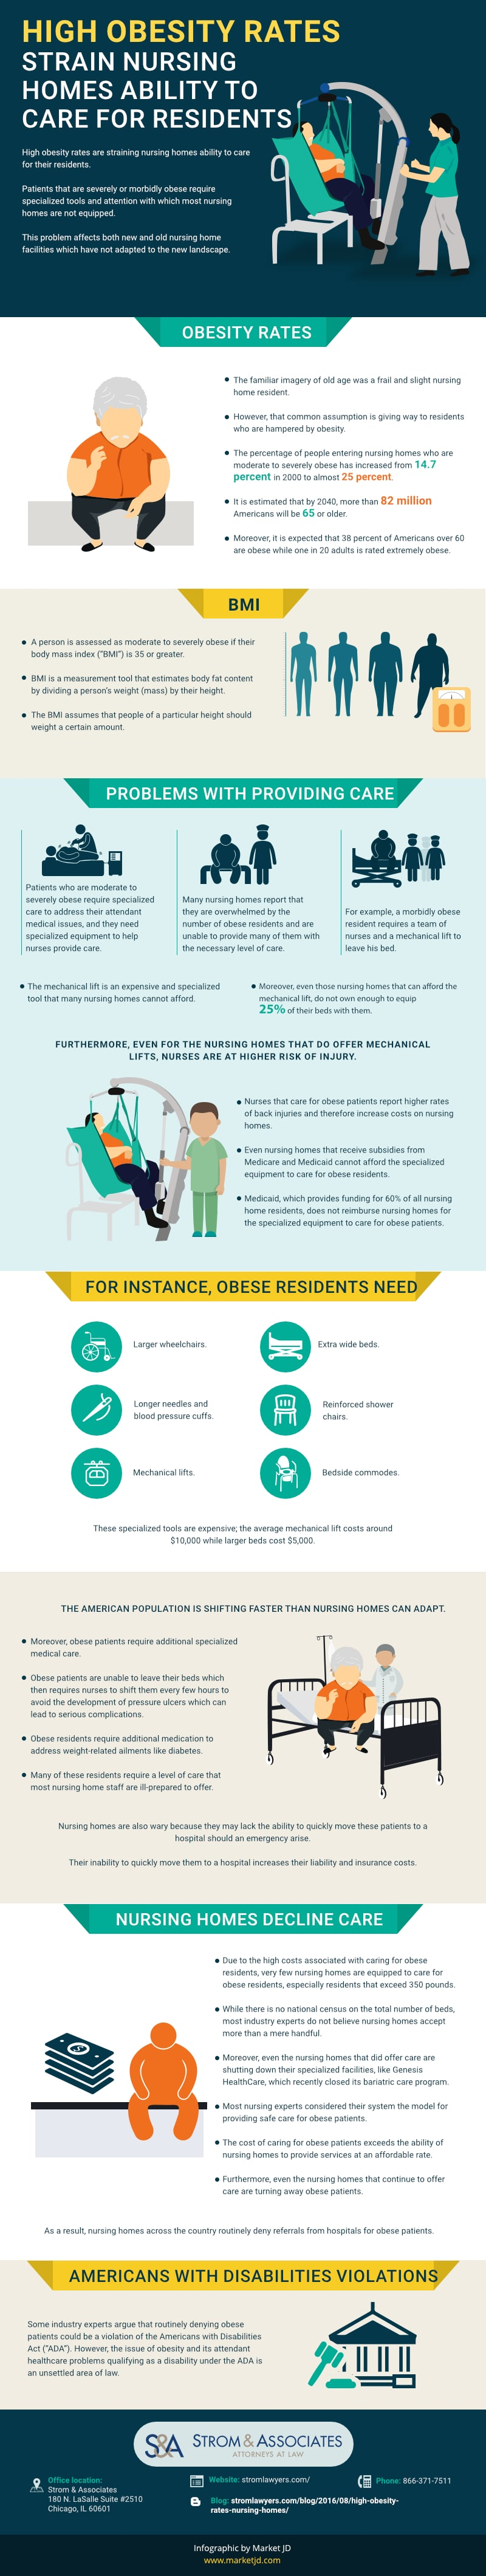 High obesity rates infographic